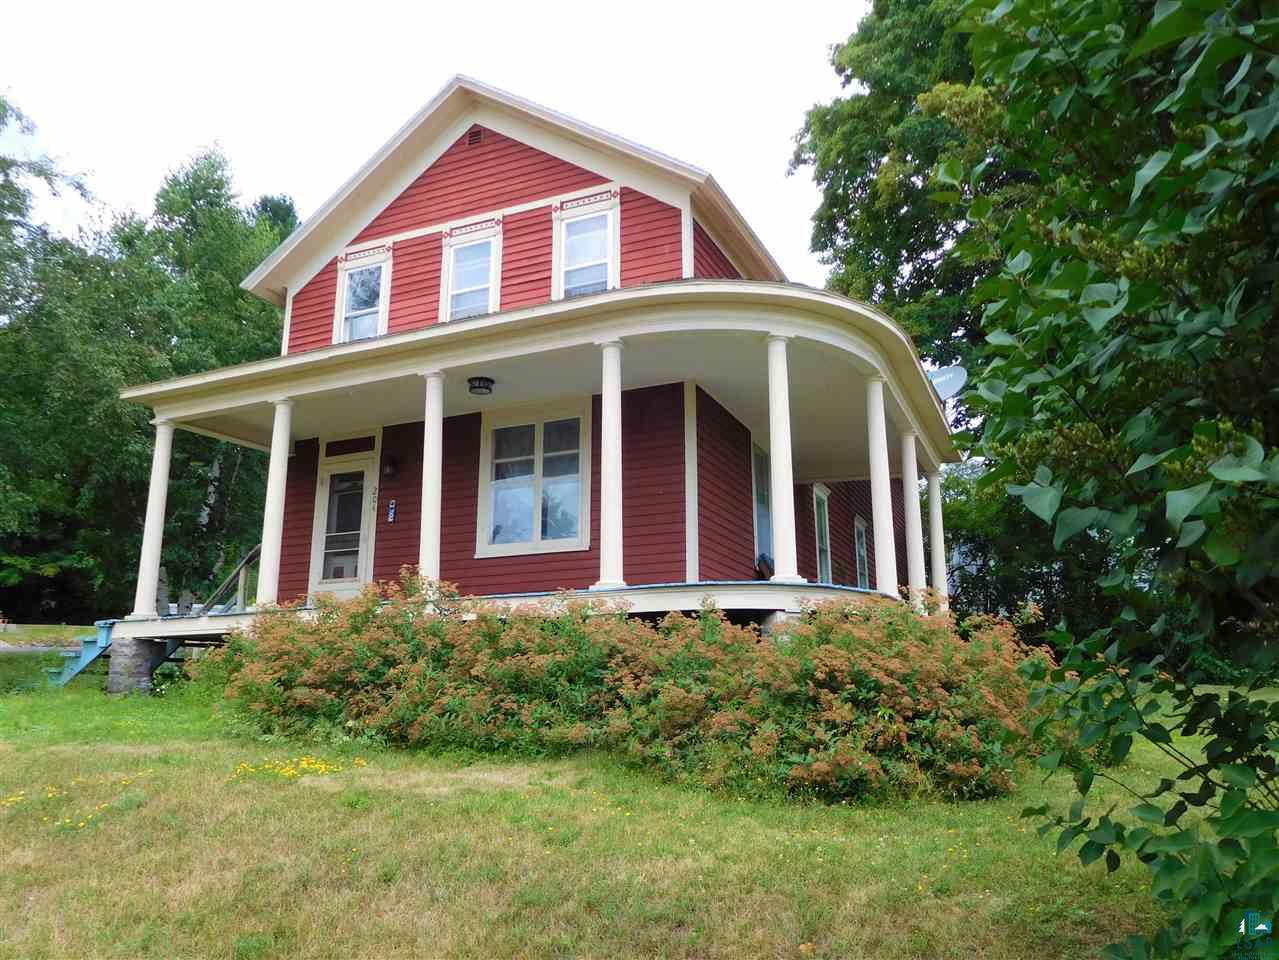 Outstanding Views!  With one of the best views in all of Bayfield, this Victorian-style home is perched on a spacious, corner lot with The Lake, and views of the Apostle Islands from almost every room in the home. Now?s your chance to own a property like this in the sought-after location of Bayfield!  Bright and charming this home retains the special character of its era; such as maple floors, leaded glass windows, high ceilings, an open staircase and Lake Superior views. The main level has a kitchen, den/bedroom, dining room, living room and half bath. The upper level has a bedroom with large walk-in closet that could double as an office, 3rd bedroom, sitting room which could become another bedroom and a very, spacious full bathroom with walk-in closet.   Relax on the wraparound porch and watch the Madeline Island Ferry and sailboats glide by. The spacious yard offers plenty of space to play & garden.  This prime location across the street from the historic Iron Bridge and just blocks away from everything the City of Bayfield has to offer will welcome you home every day. After October 14th price will increase by $10,000 or more due to capital improvement projects.